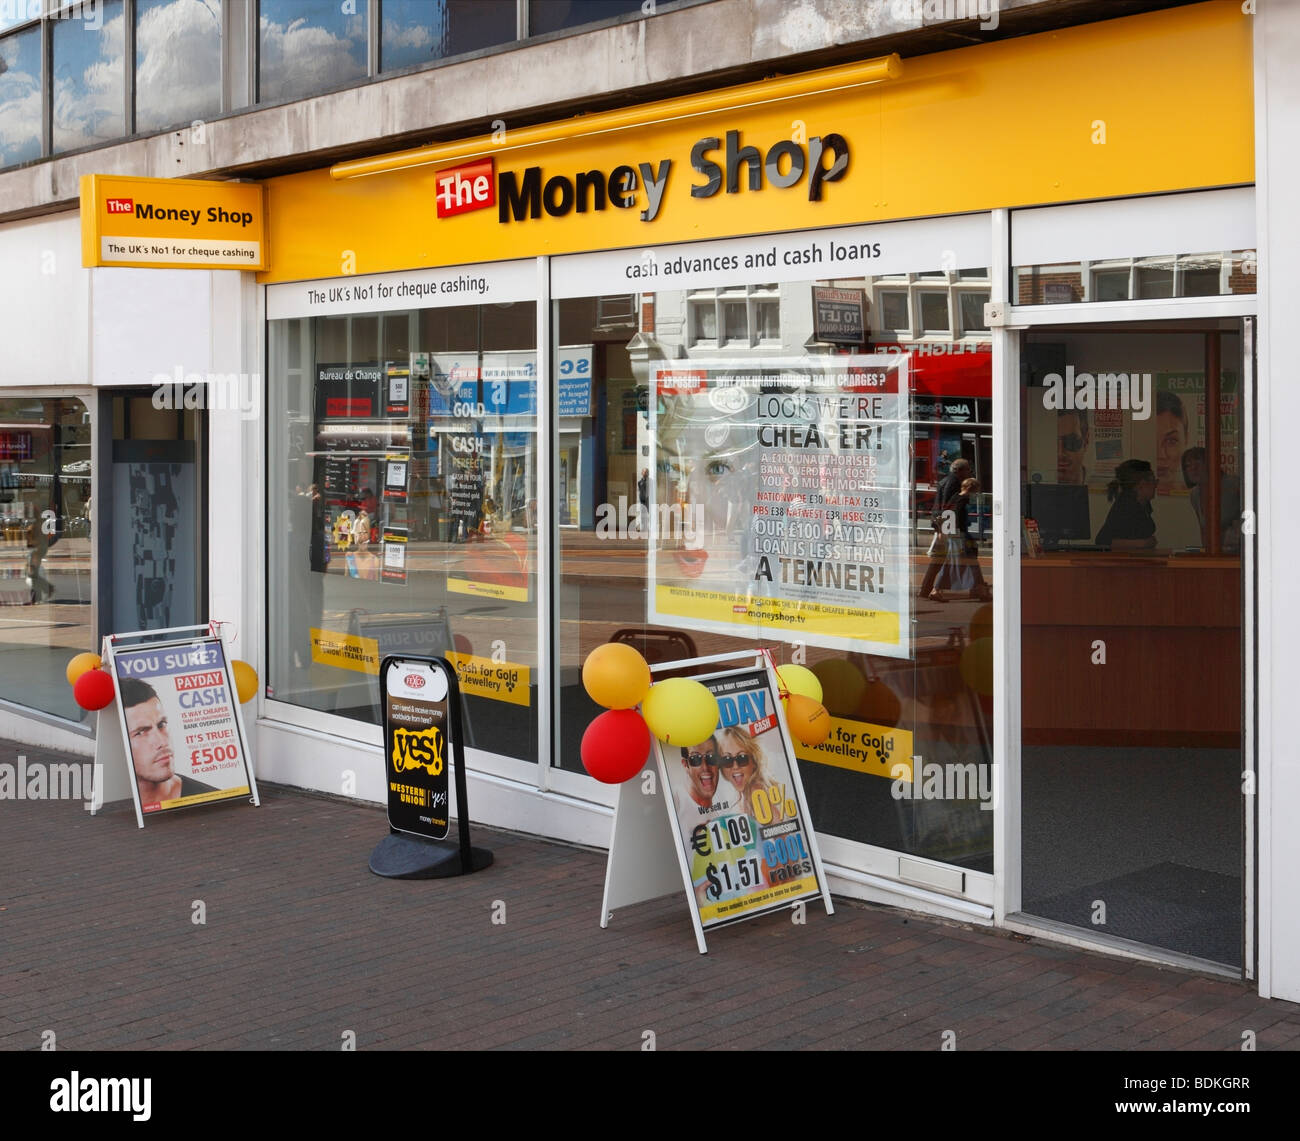 99 payday loans picture 9